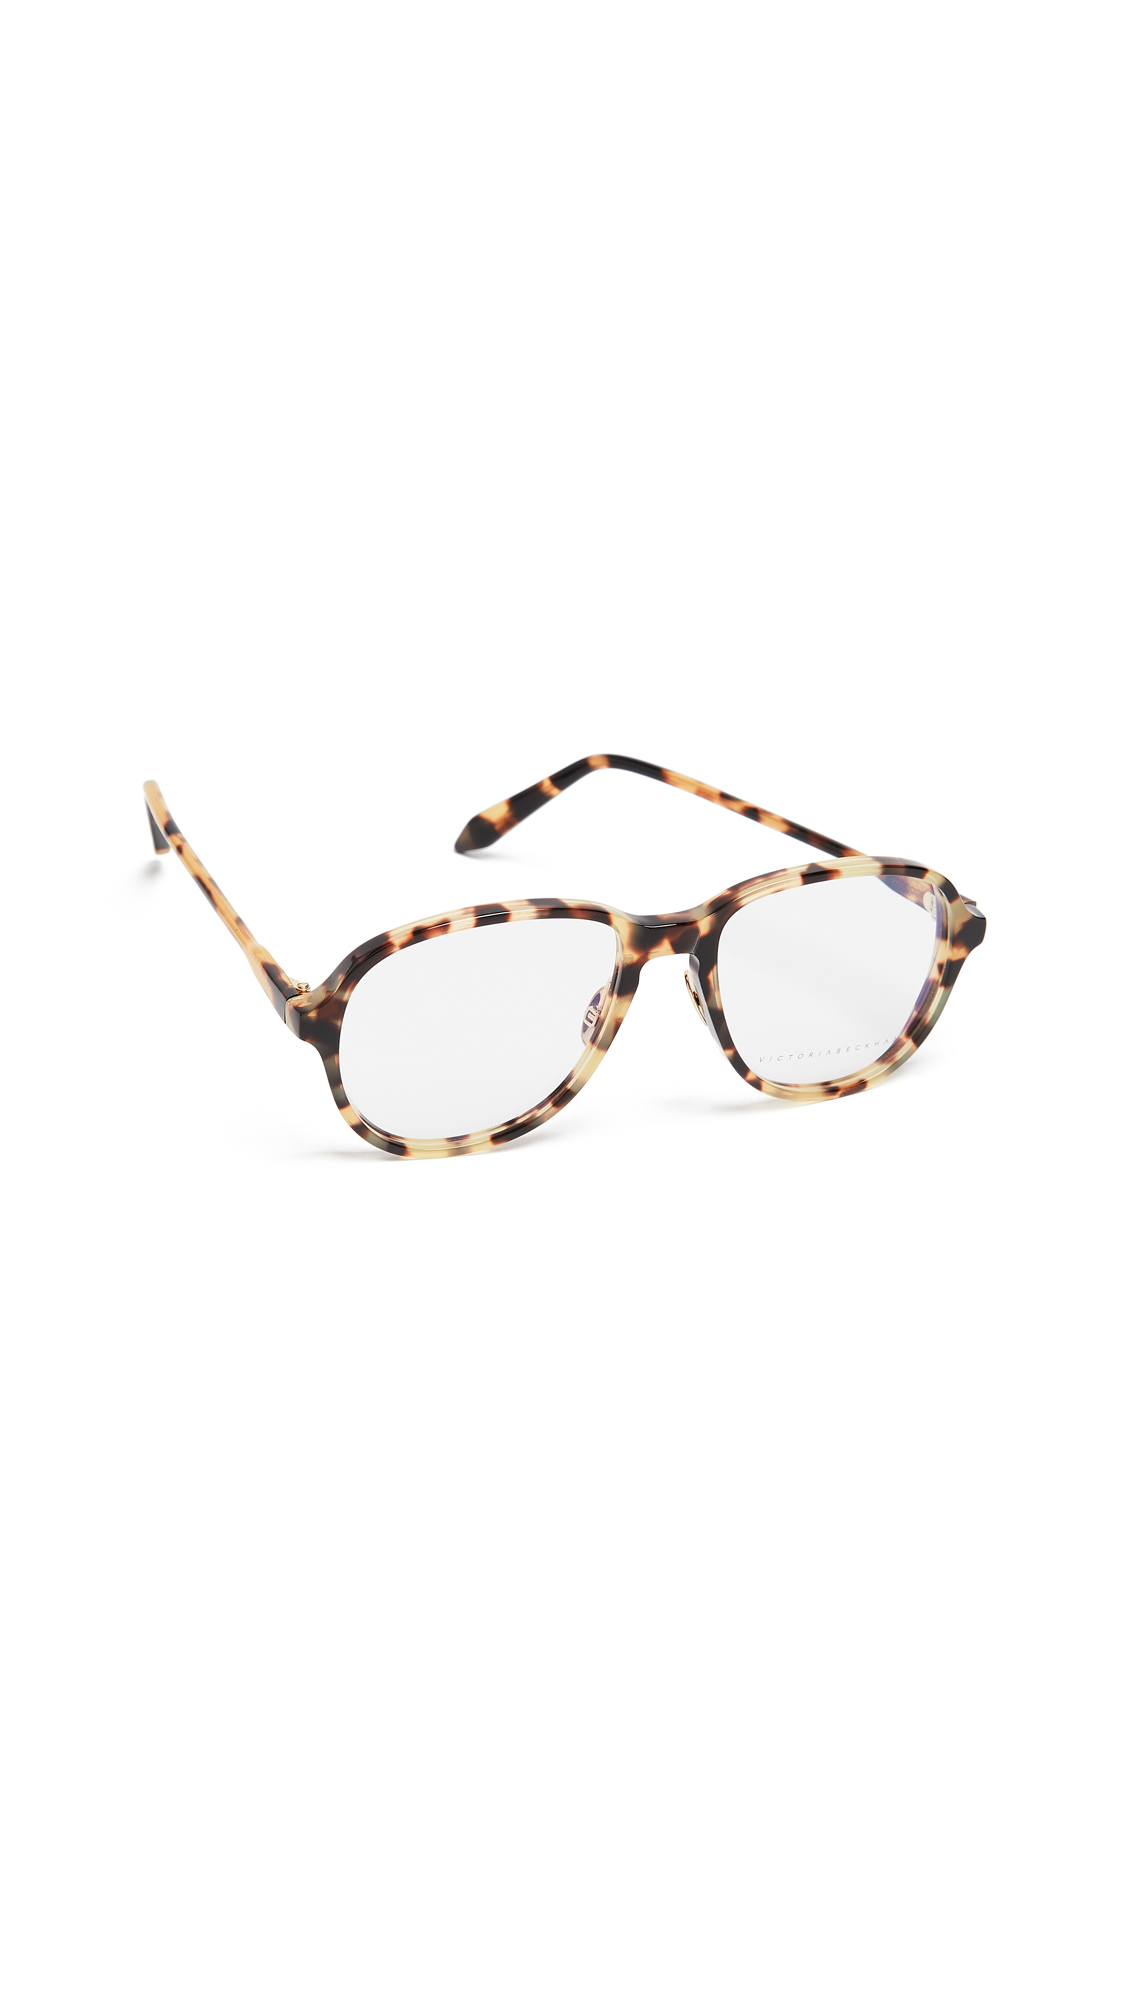 Victoria Beckham Fine Oval Glasses - Yellow Tort